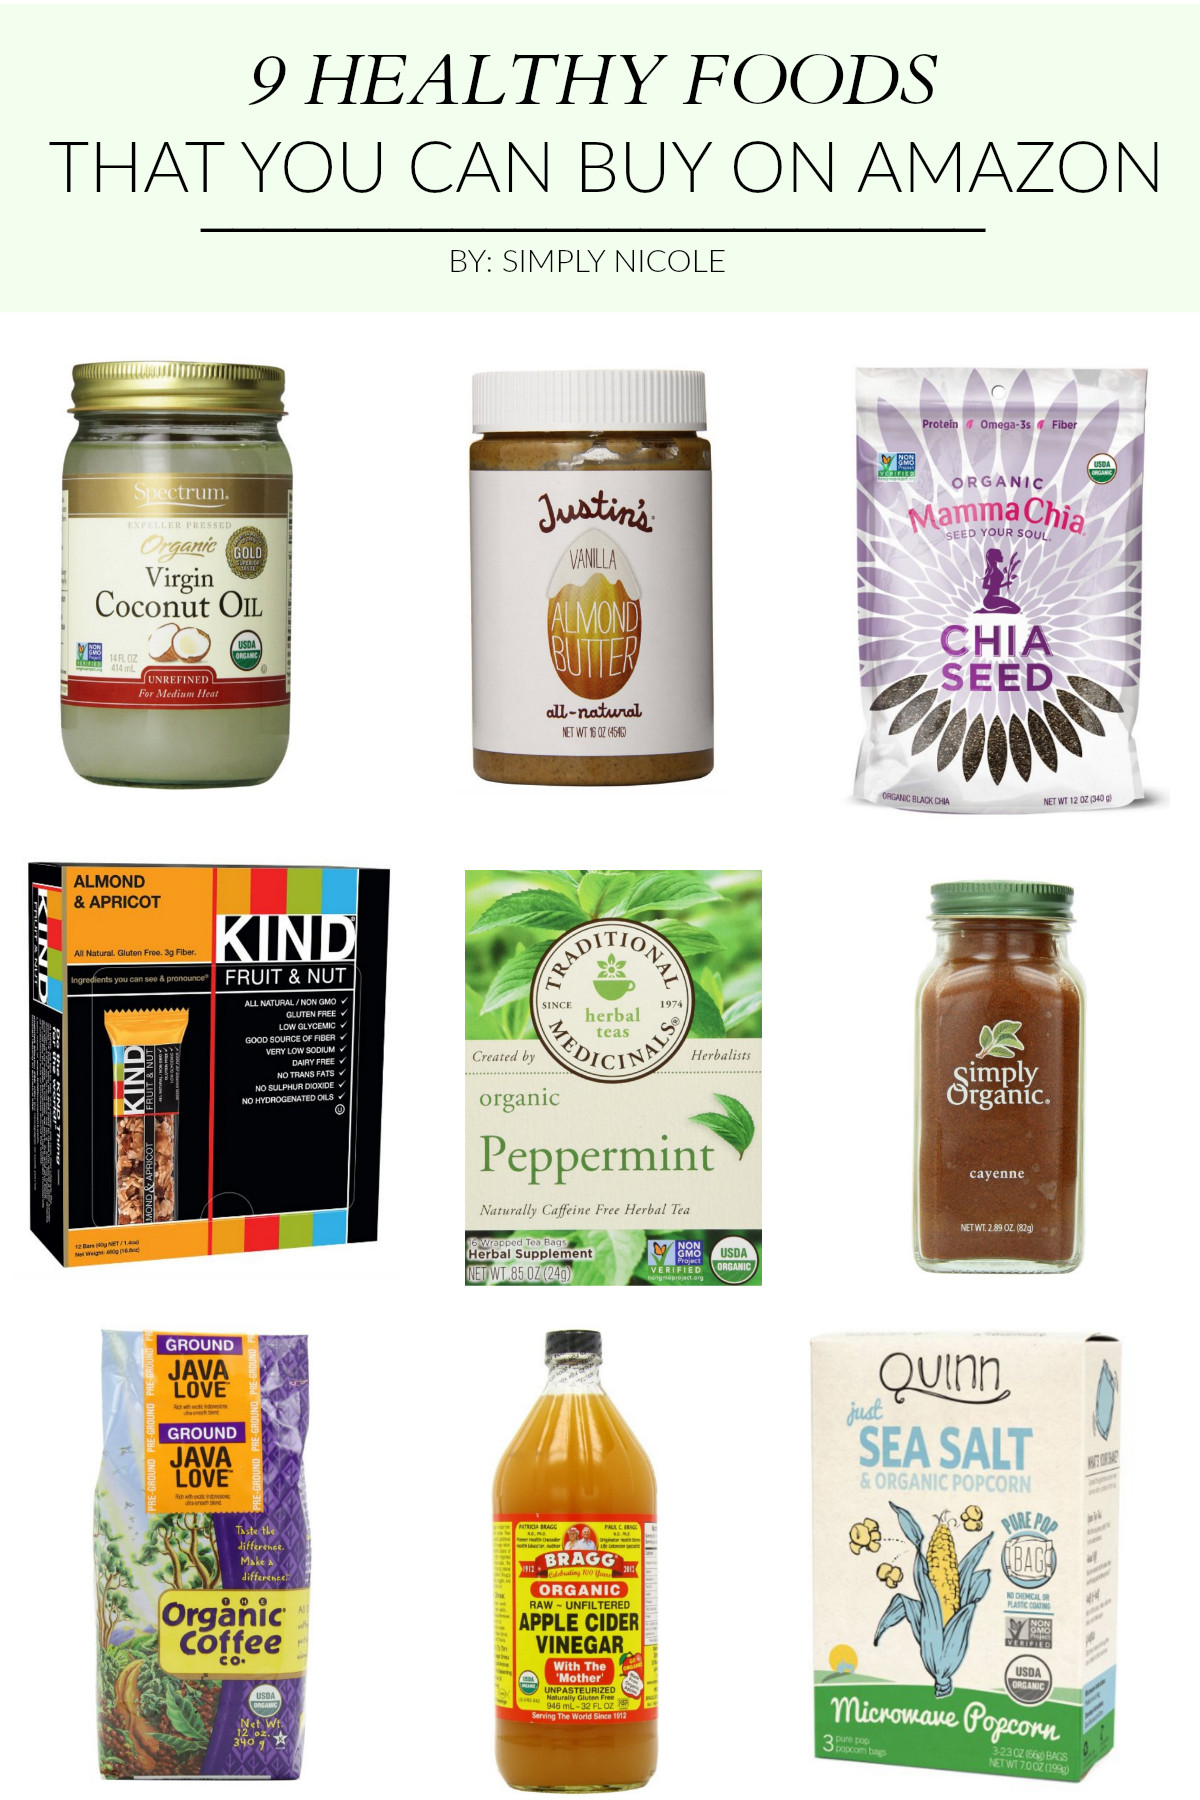 Healthy Snacks You Can Buy  9 Healthy Foods that You Can Buy on Amazon Simply Nicole